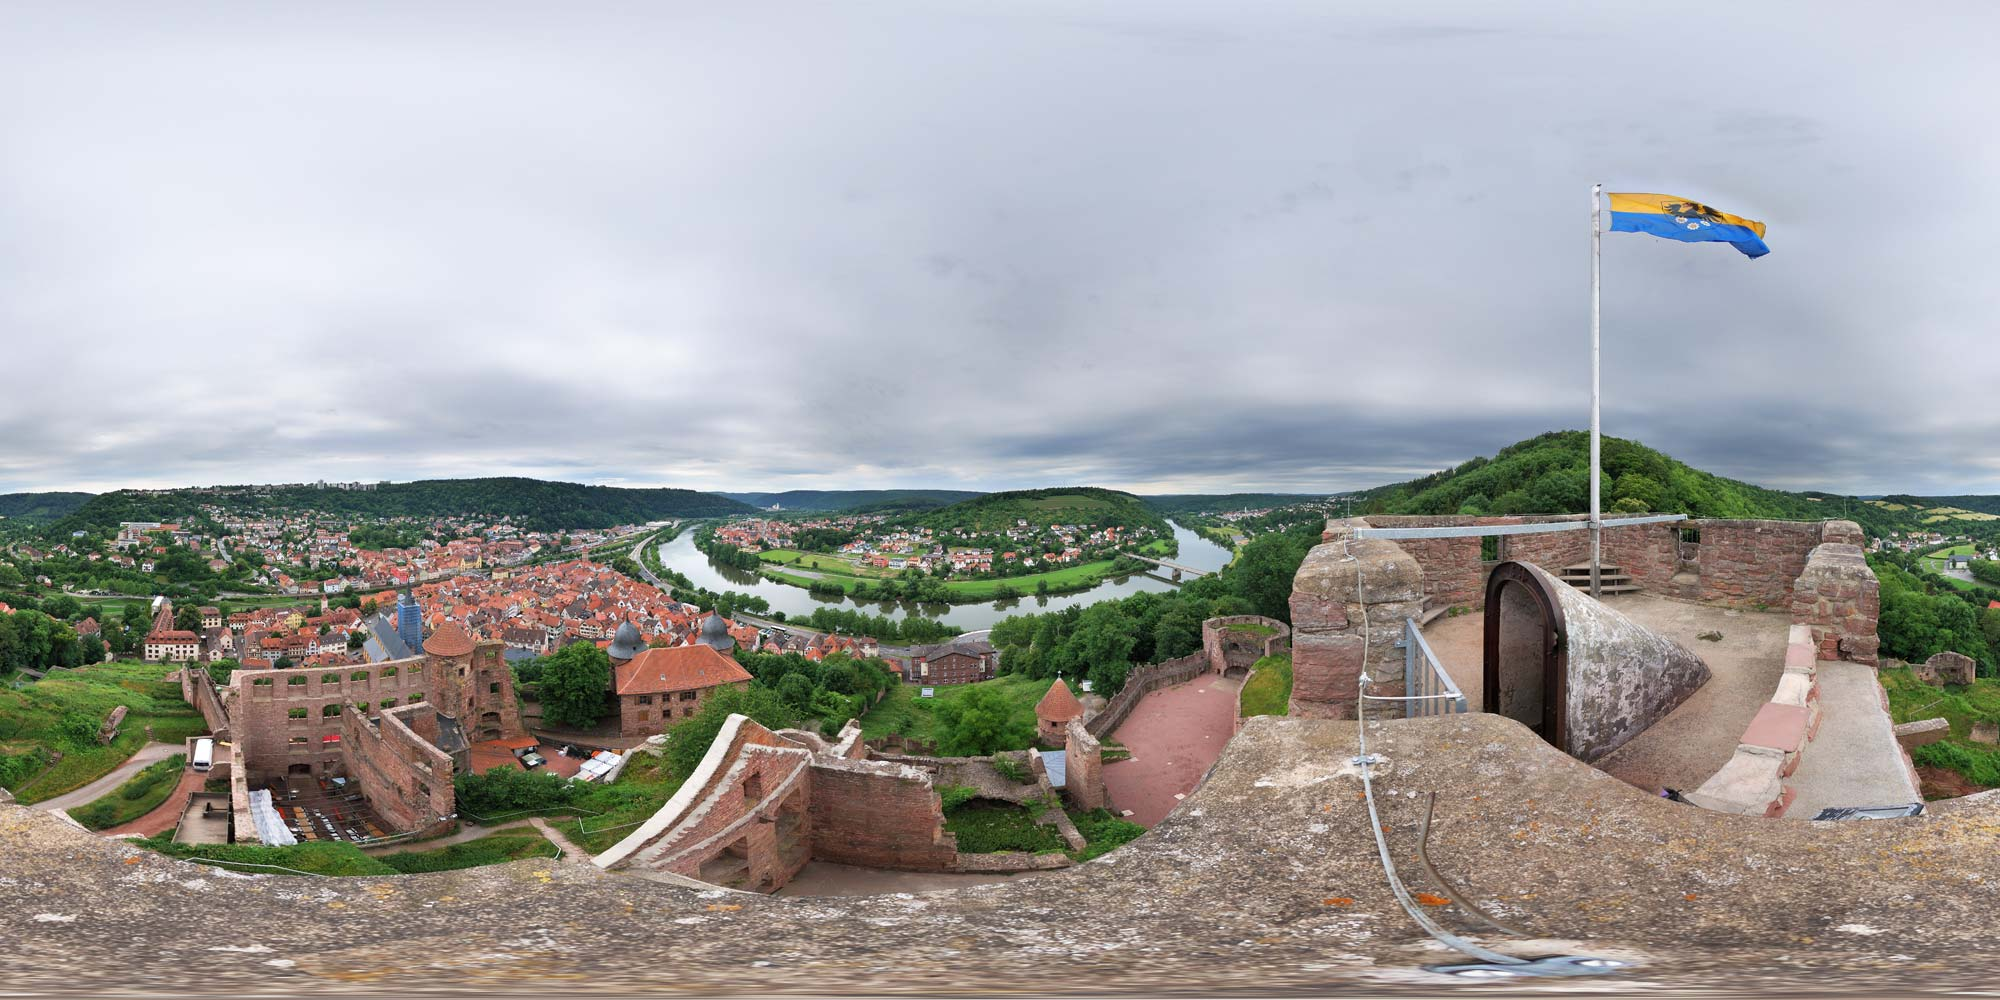 Panorama  Wertheim - Burg Wertheim - Burgfried